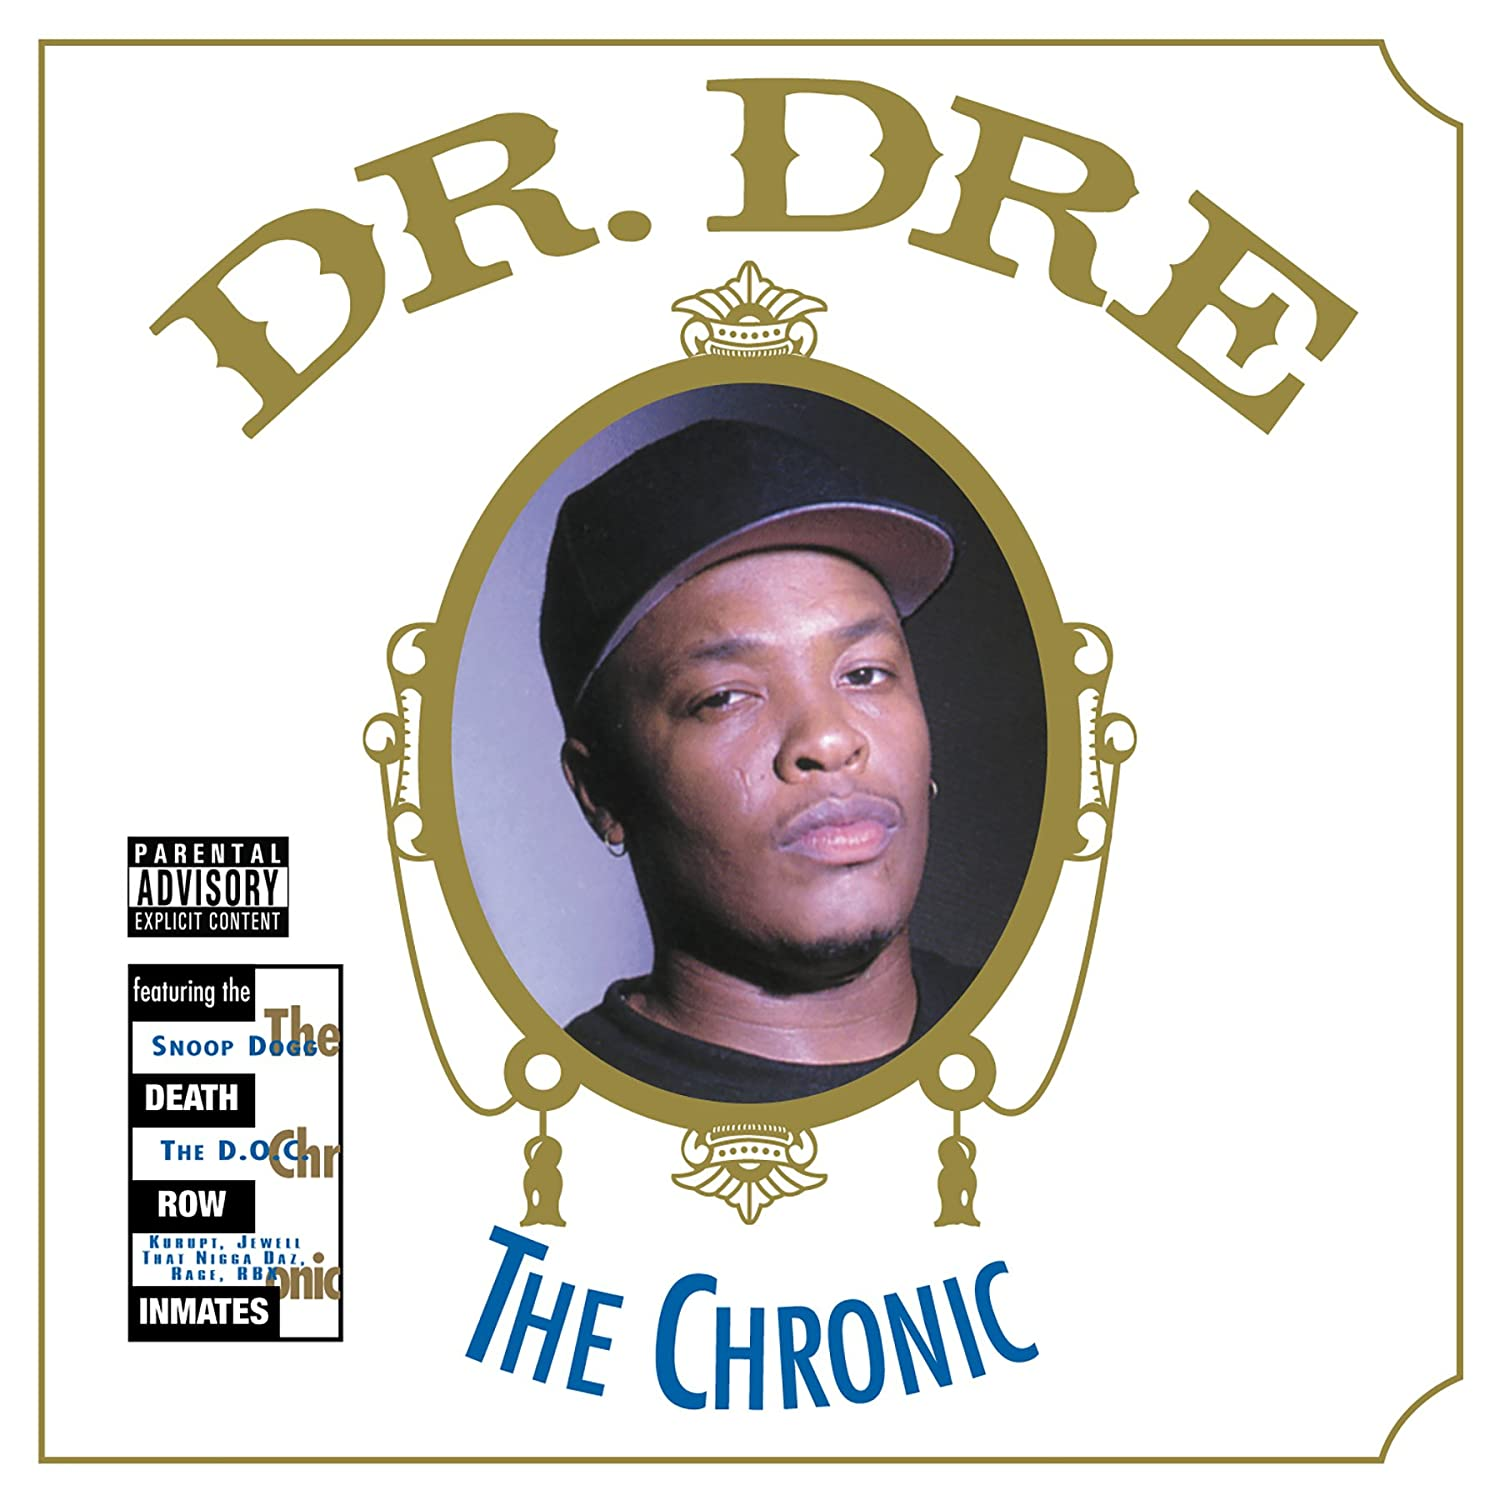 Dr. Dre The Chronic album cover